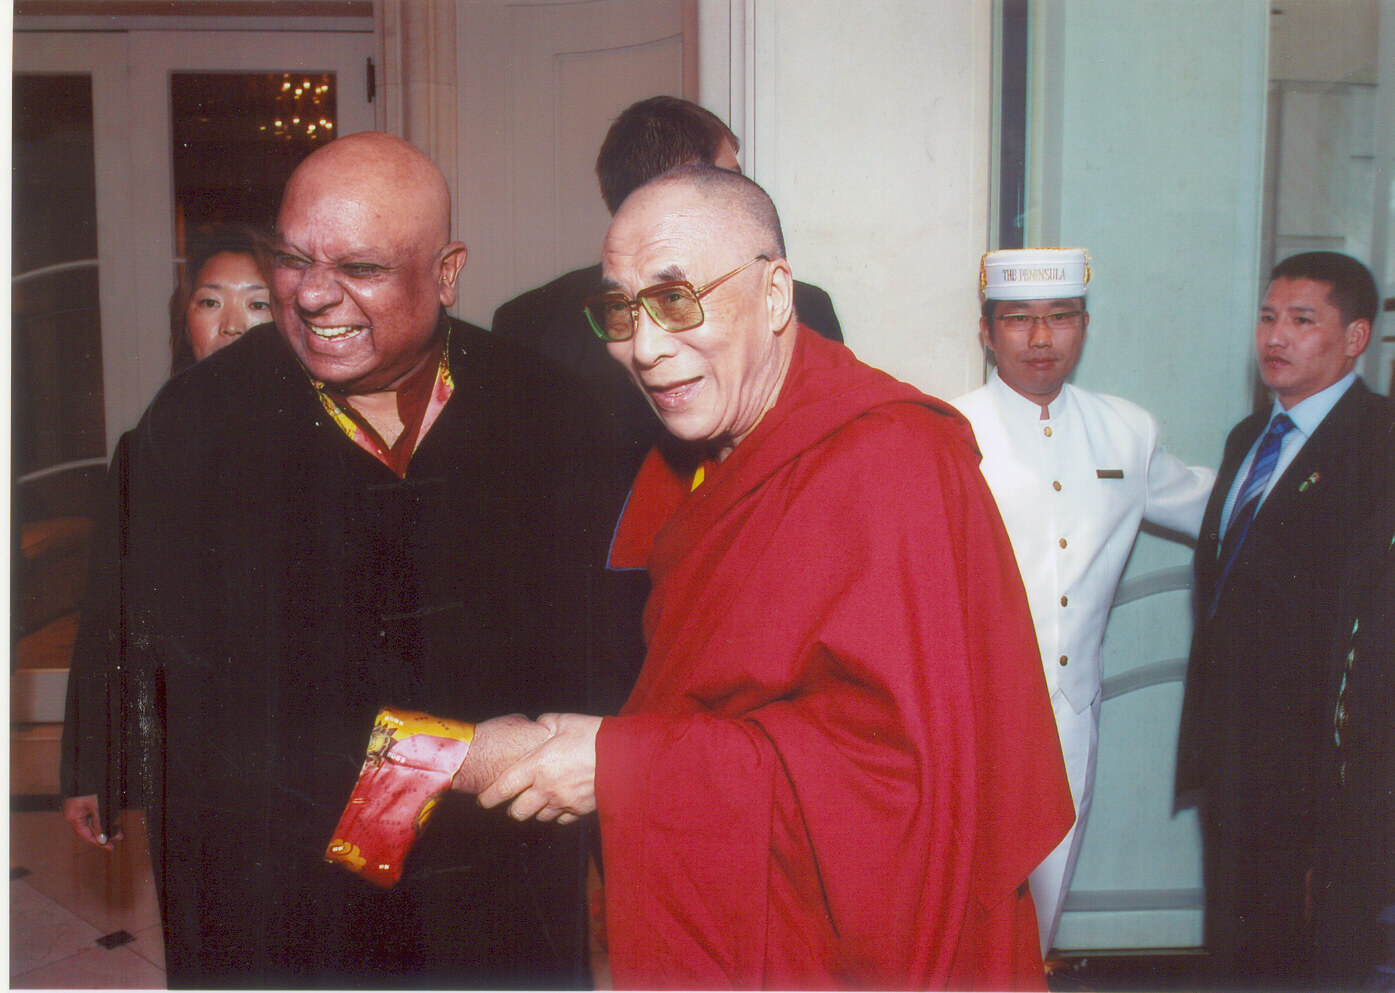 Dr. M with the Dalai Lama at the Asia conference in Kyoto Japan